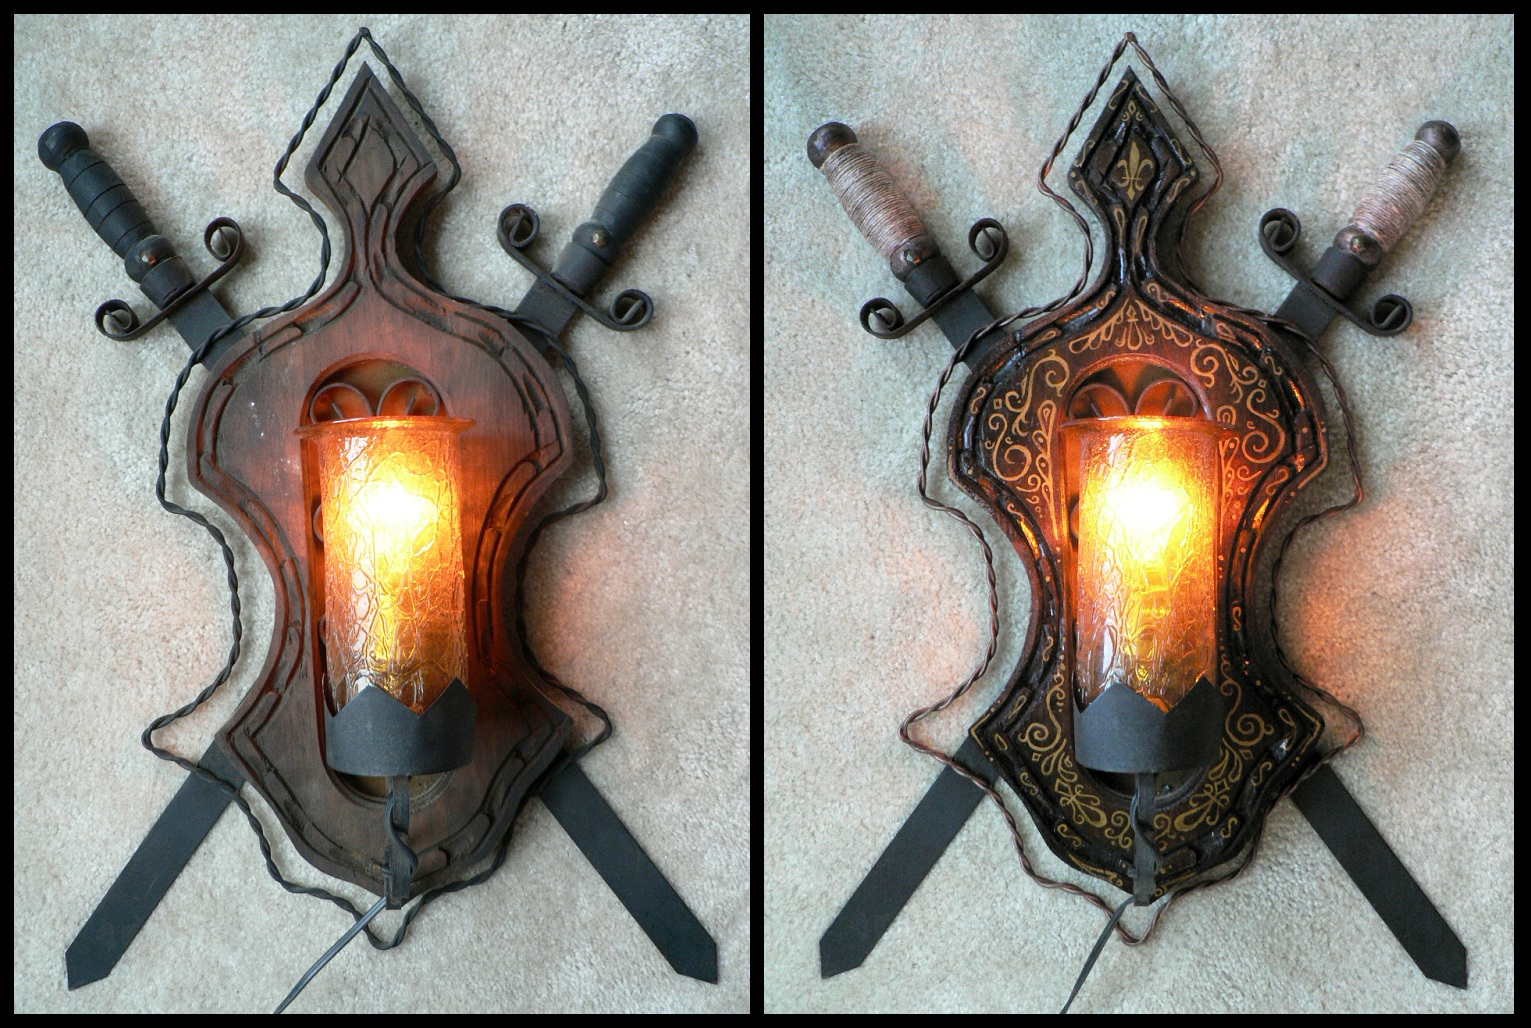 spruced_up_lamp_by_blackmagdalena-d4ahr87